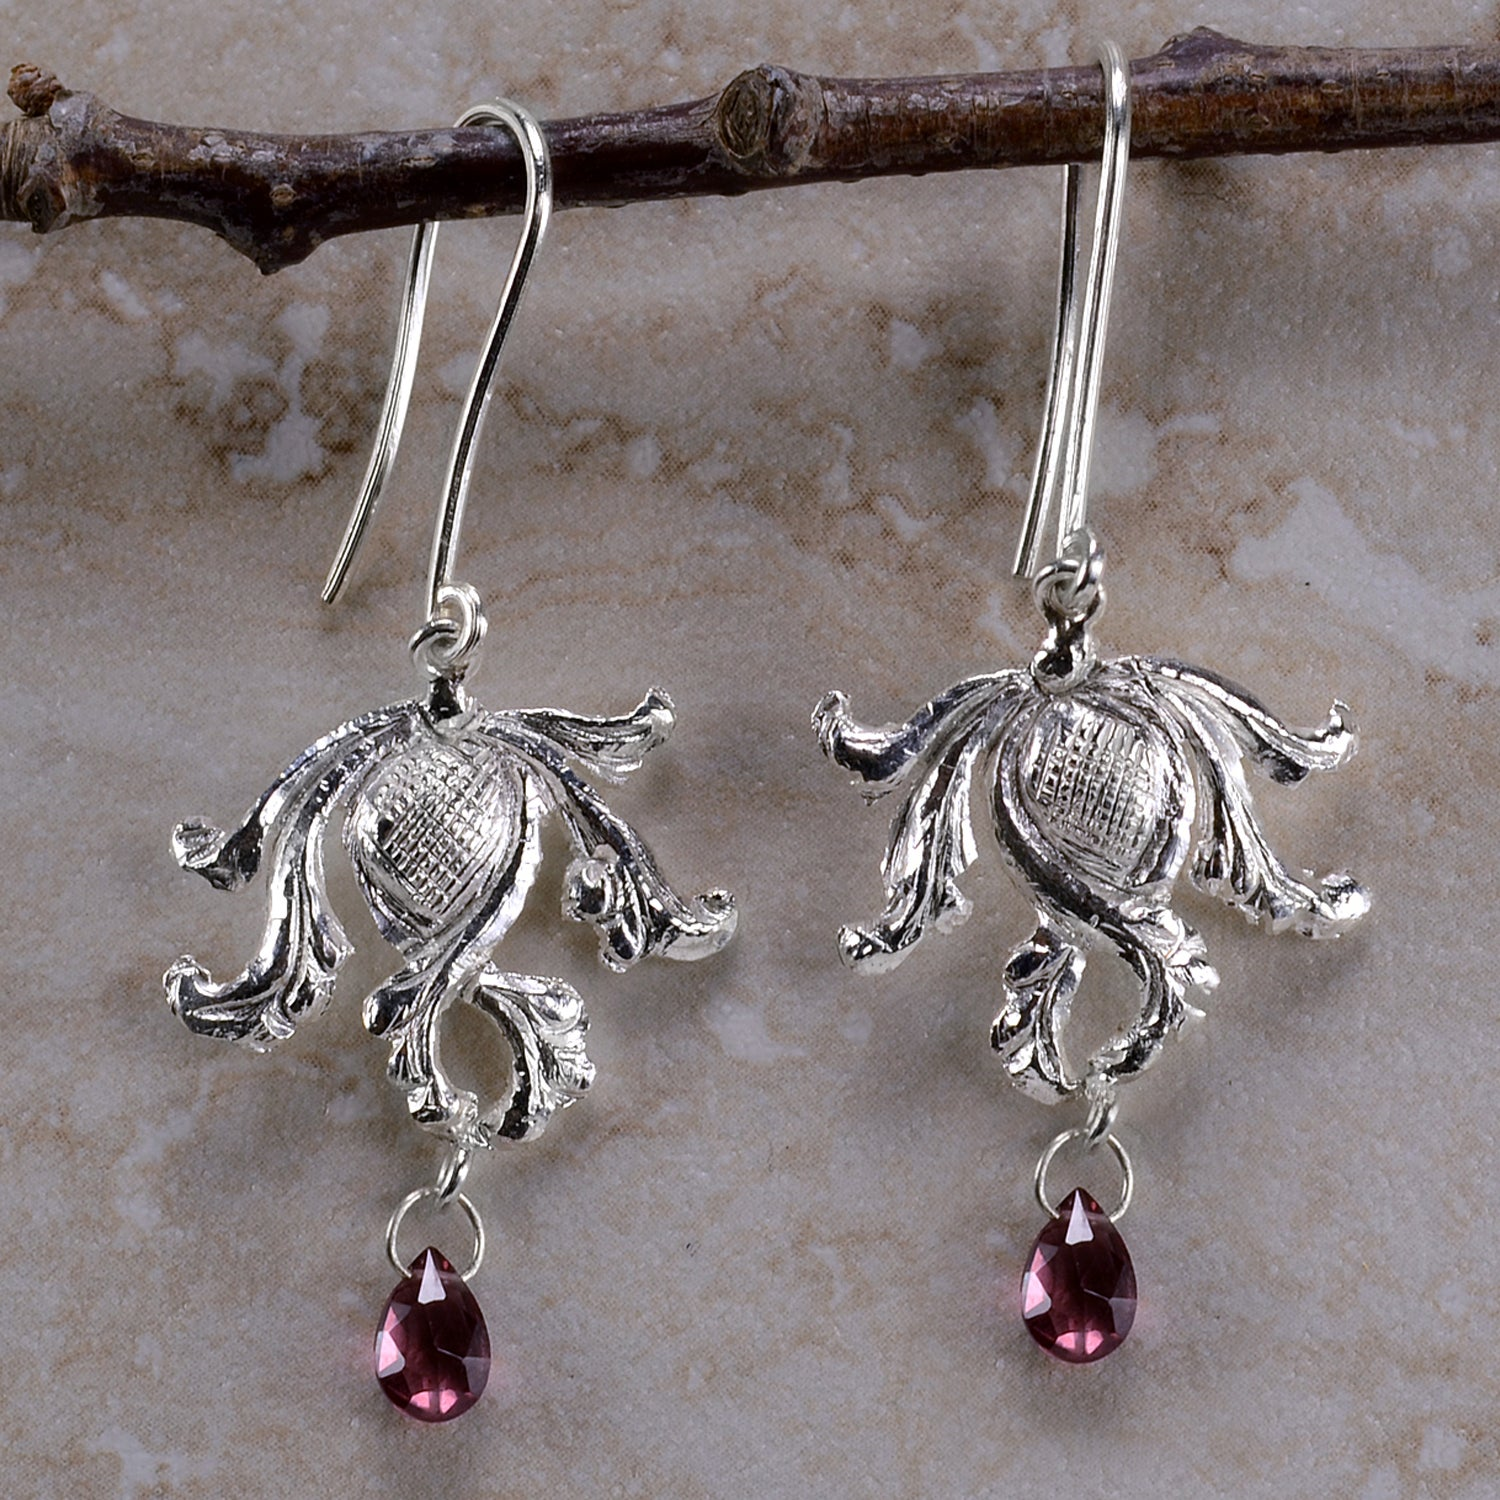 Ashanti 'Katira Mala' Sterling Silver & Rhodolite Garnet Briolette Dangle Earrings (Sri Lanka)